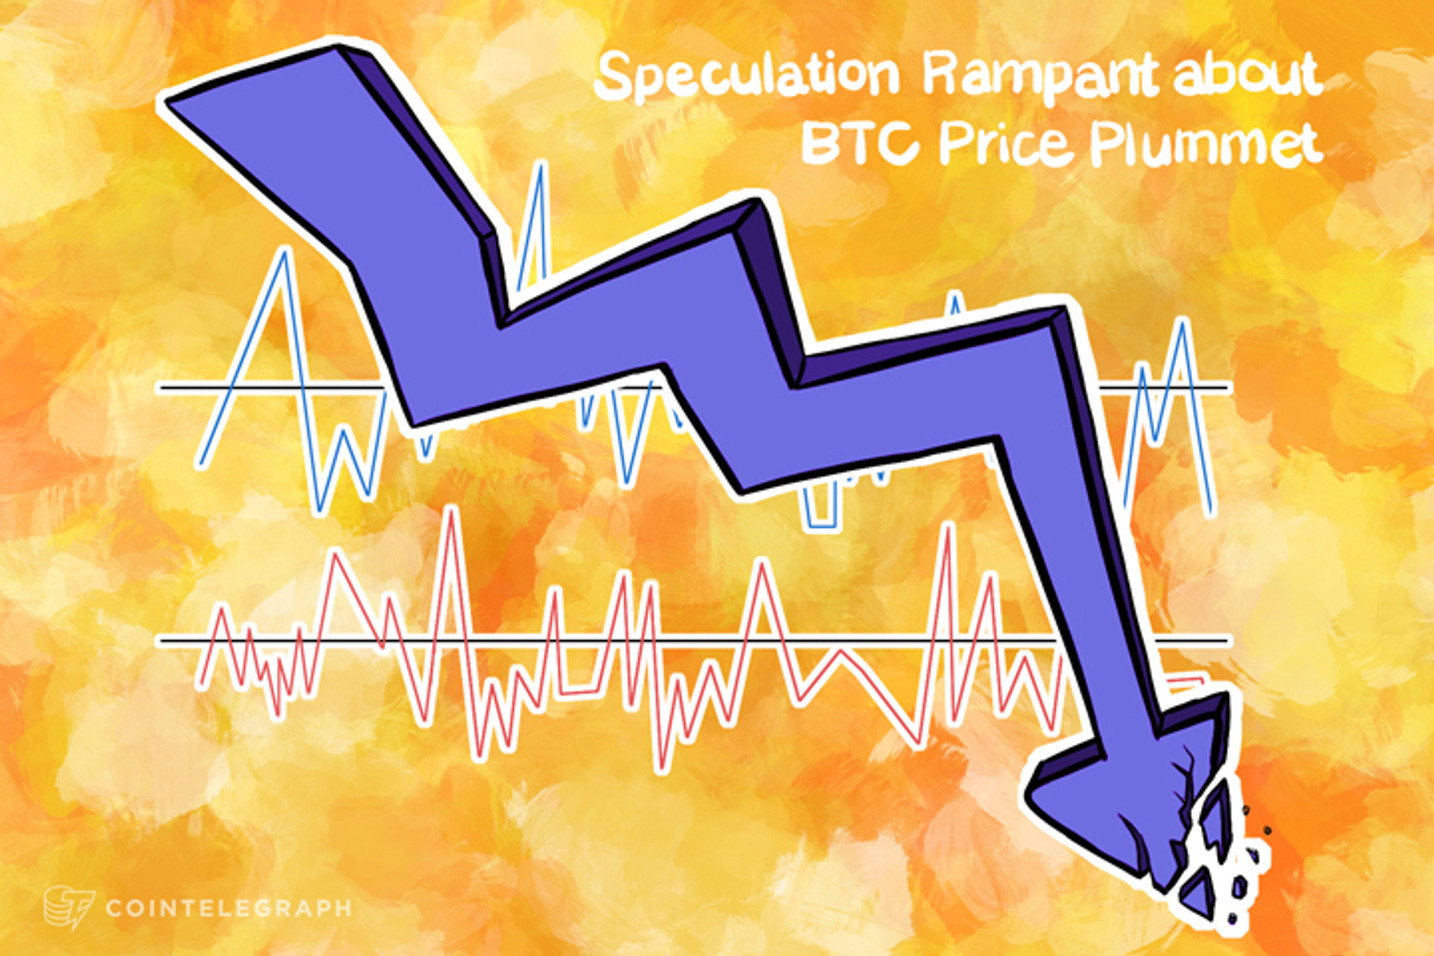 Speculation Rampant About BTC Price Plummet